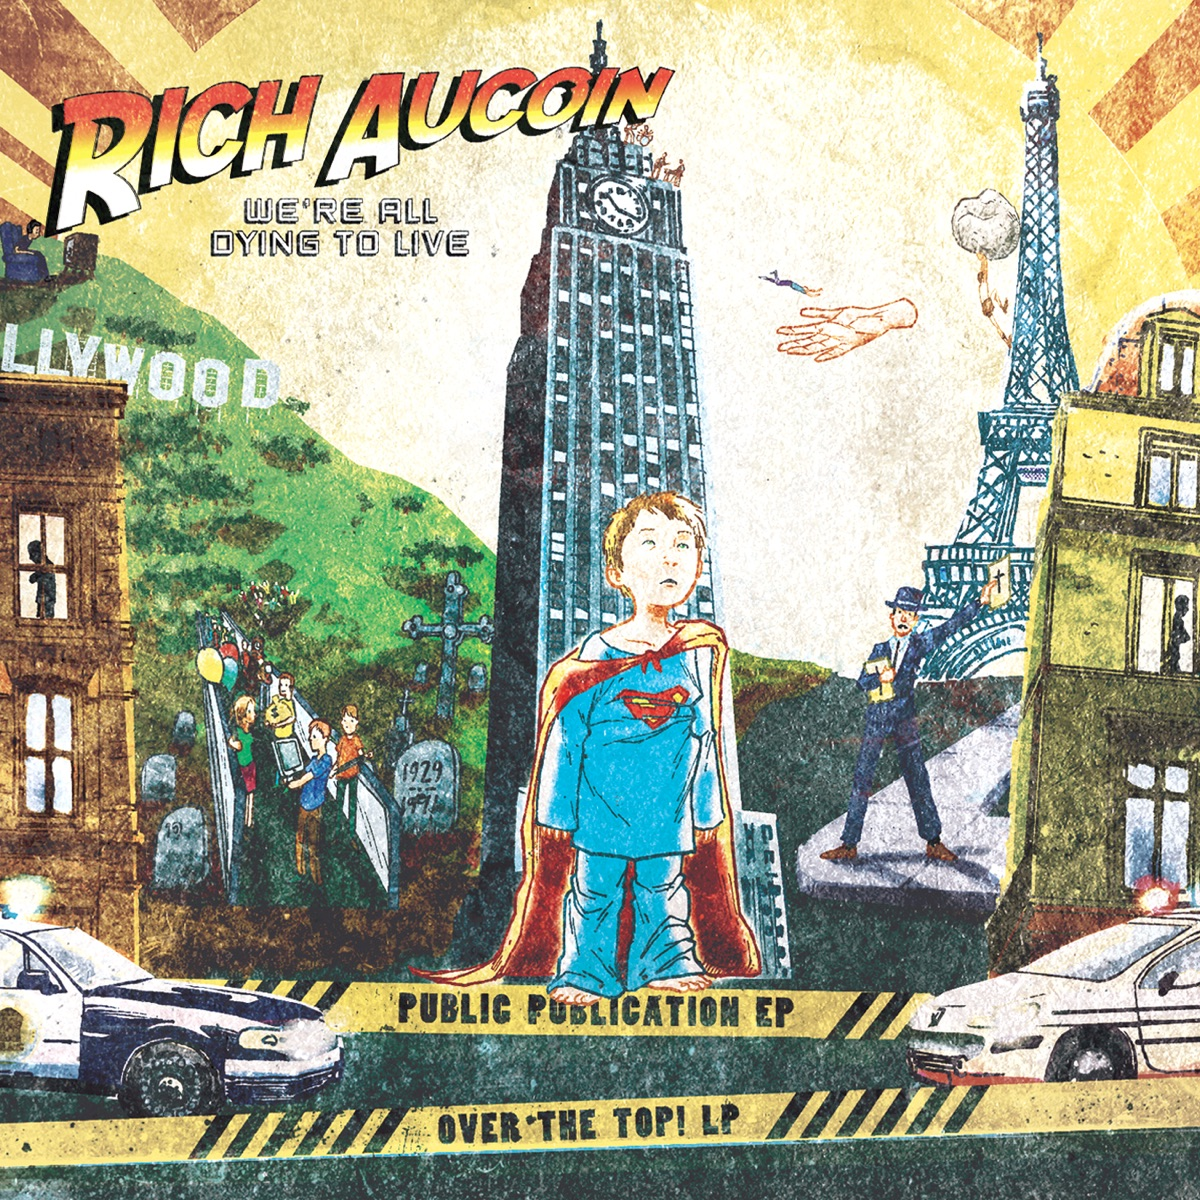 Were All Dying to Live - Public Publication EP  Over the Top Rich Aucoin CD cover